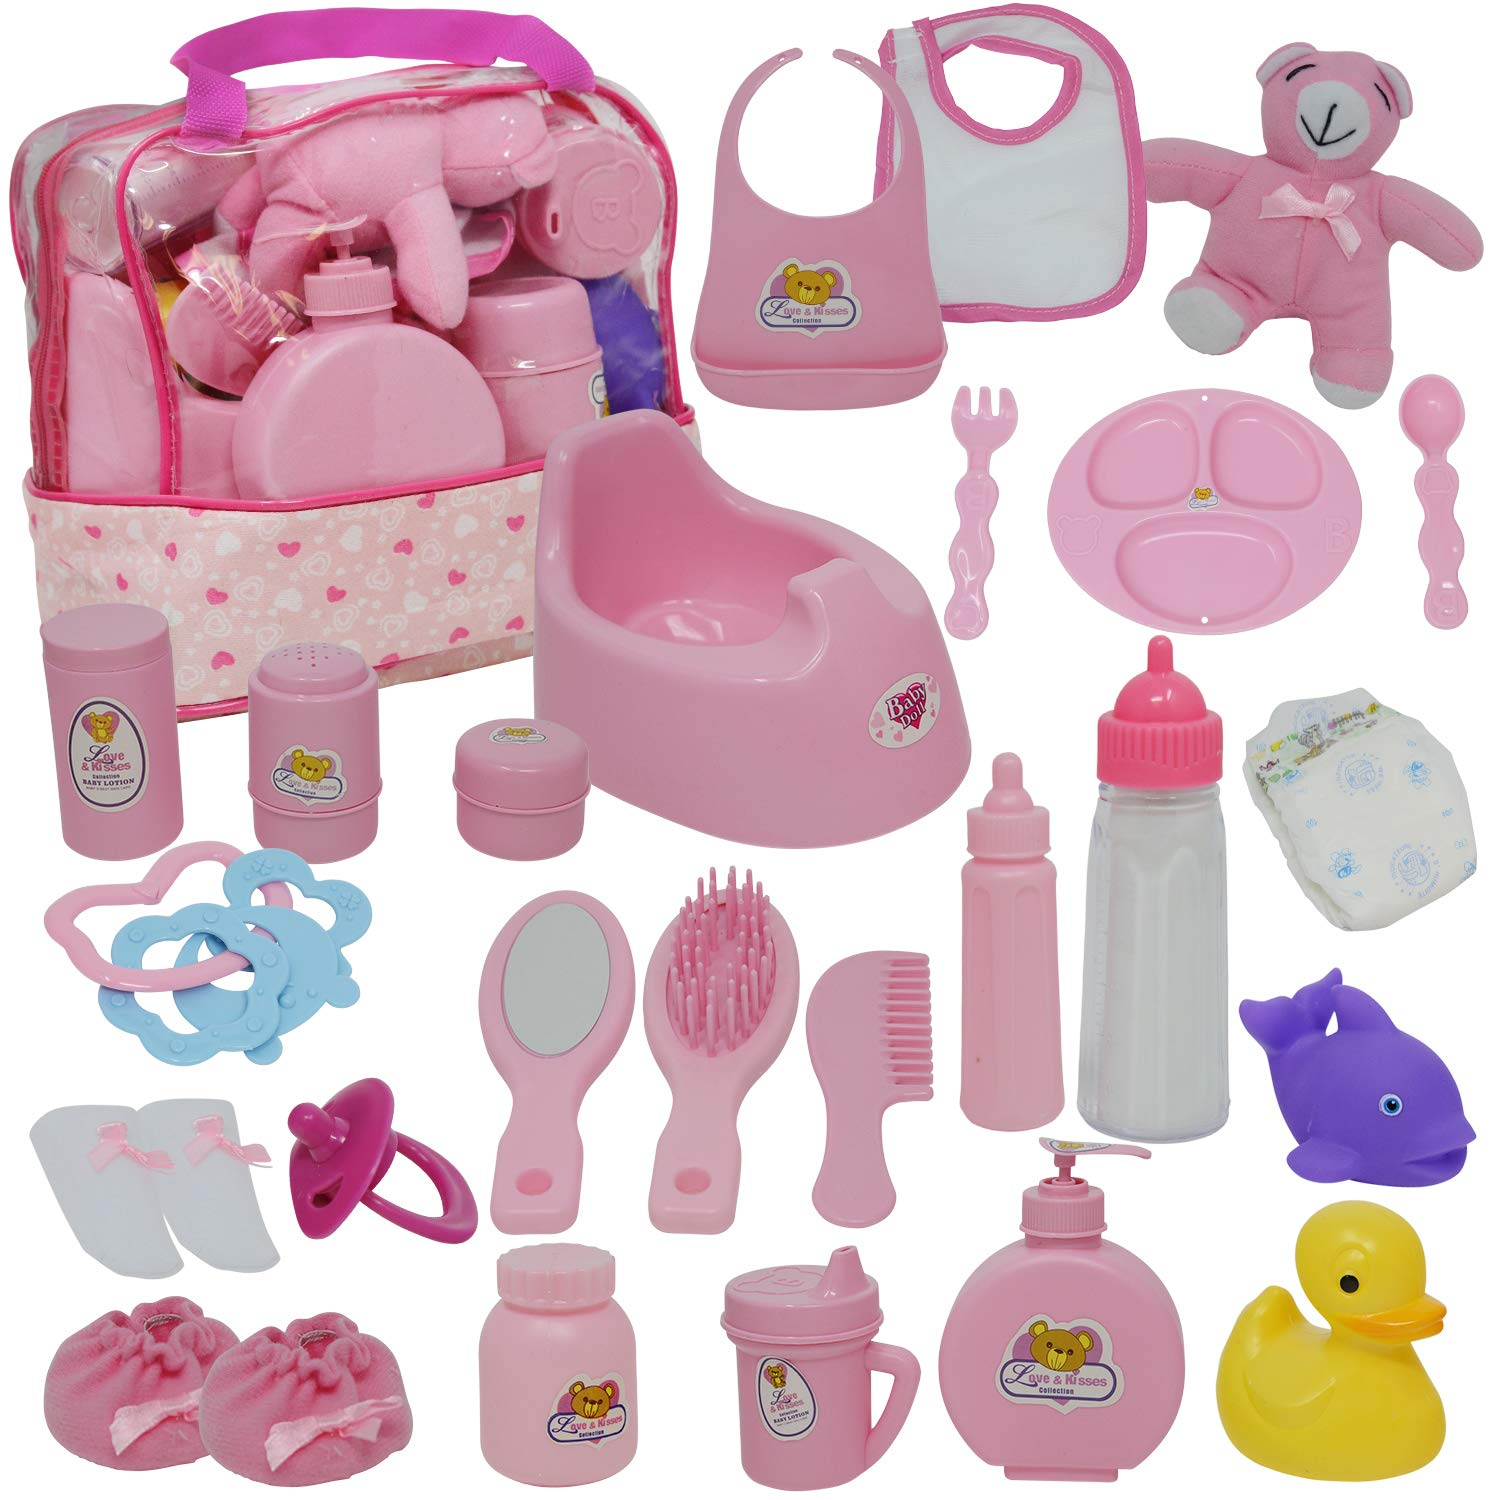 07664733dde5 Baby Doll Diaper Bag Set, Doll Feeding Set with Baby Doll Accessories  Includes Doll Bottles